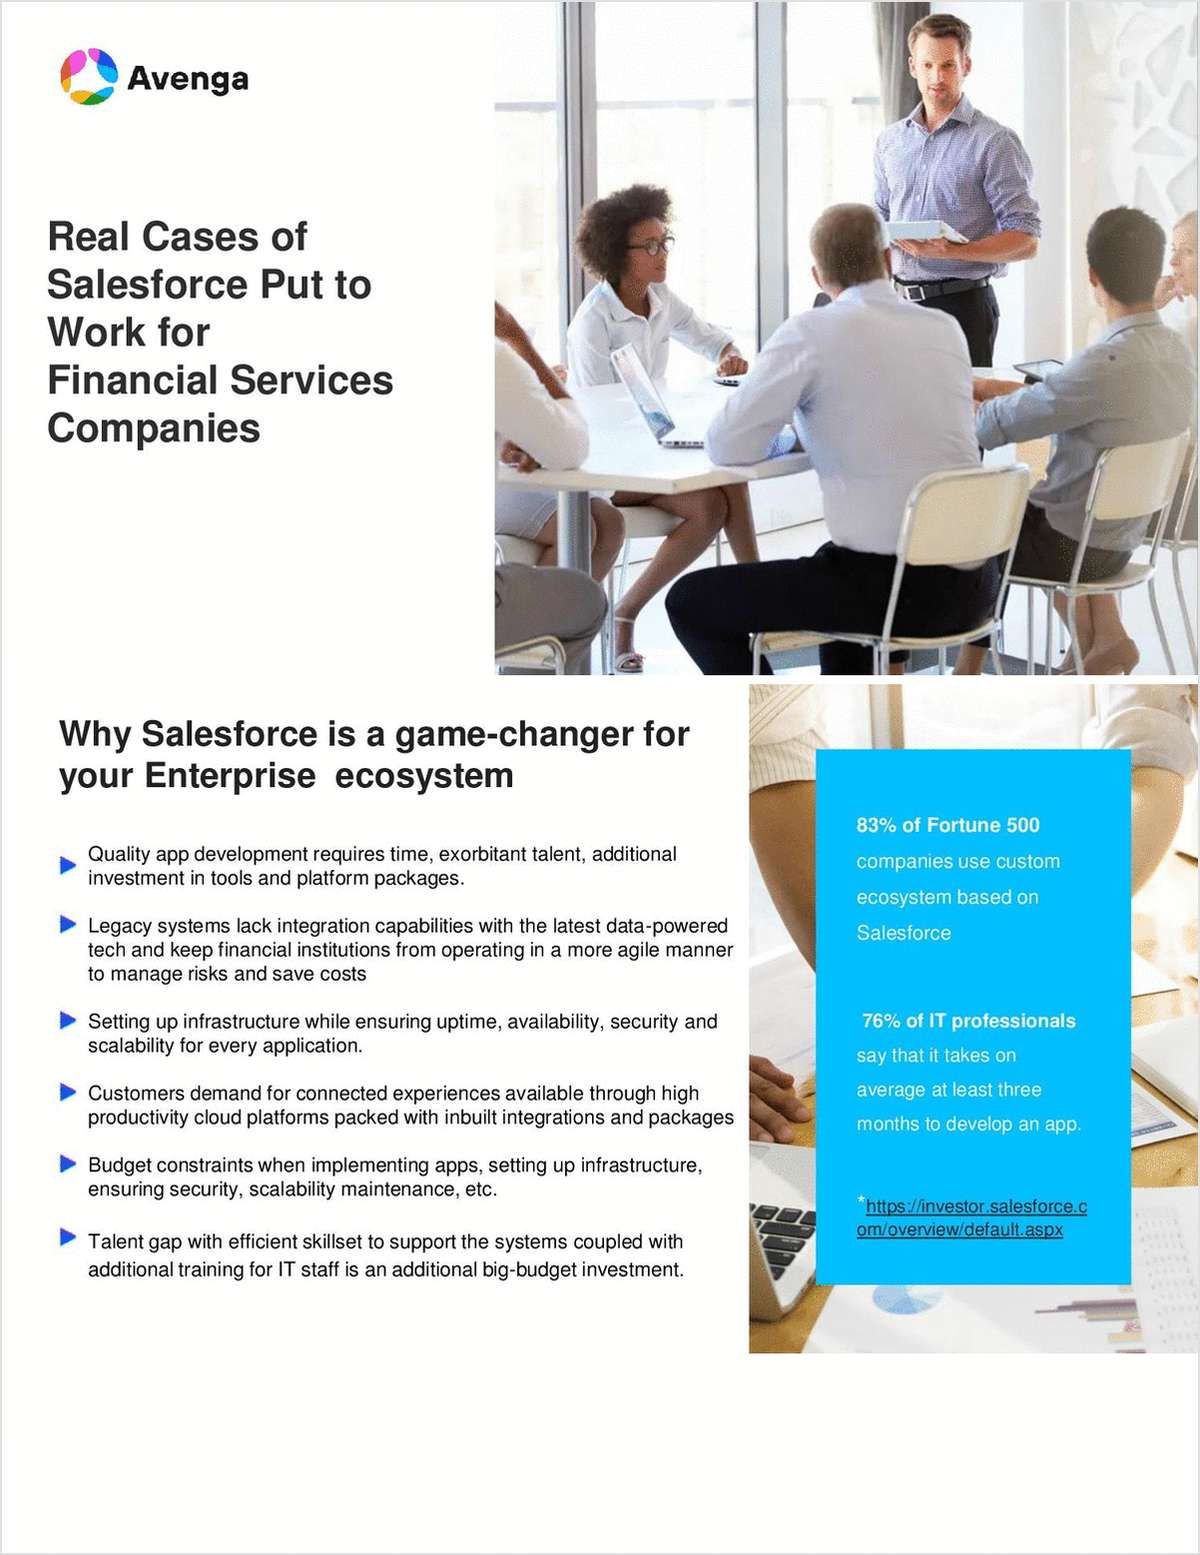 Real Cases of Salesforce Platform Put to Work for Financial Services Companies